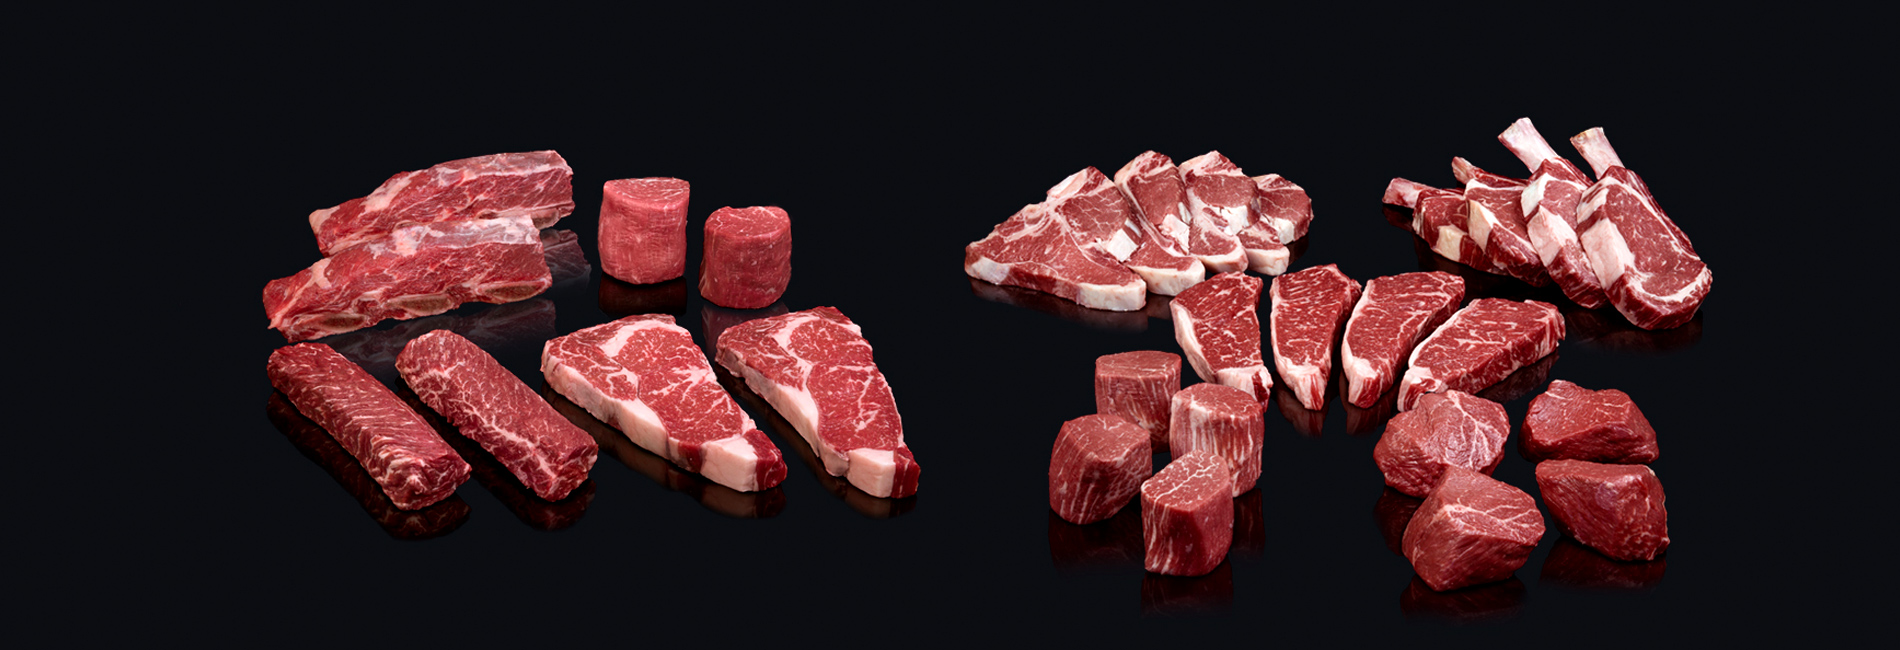 Premier Meat Company | Order Fresh Steak Online | Meat The